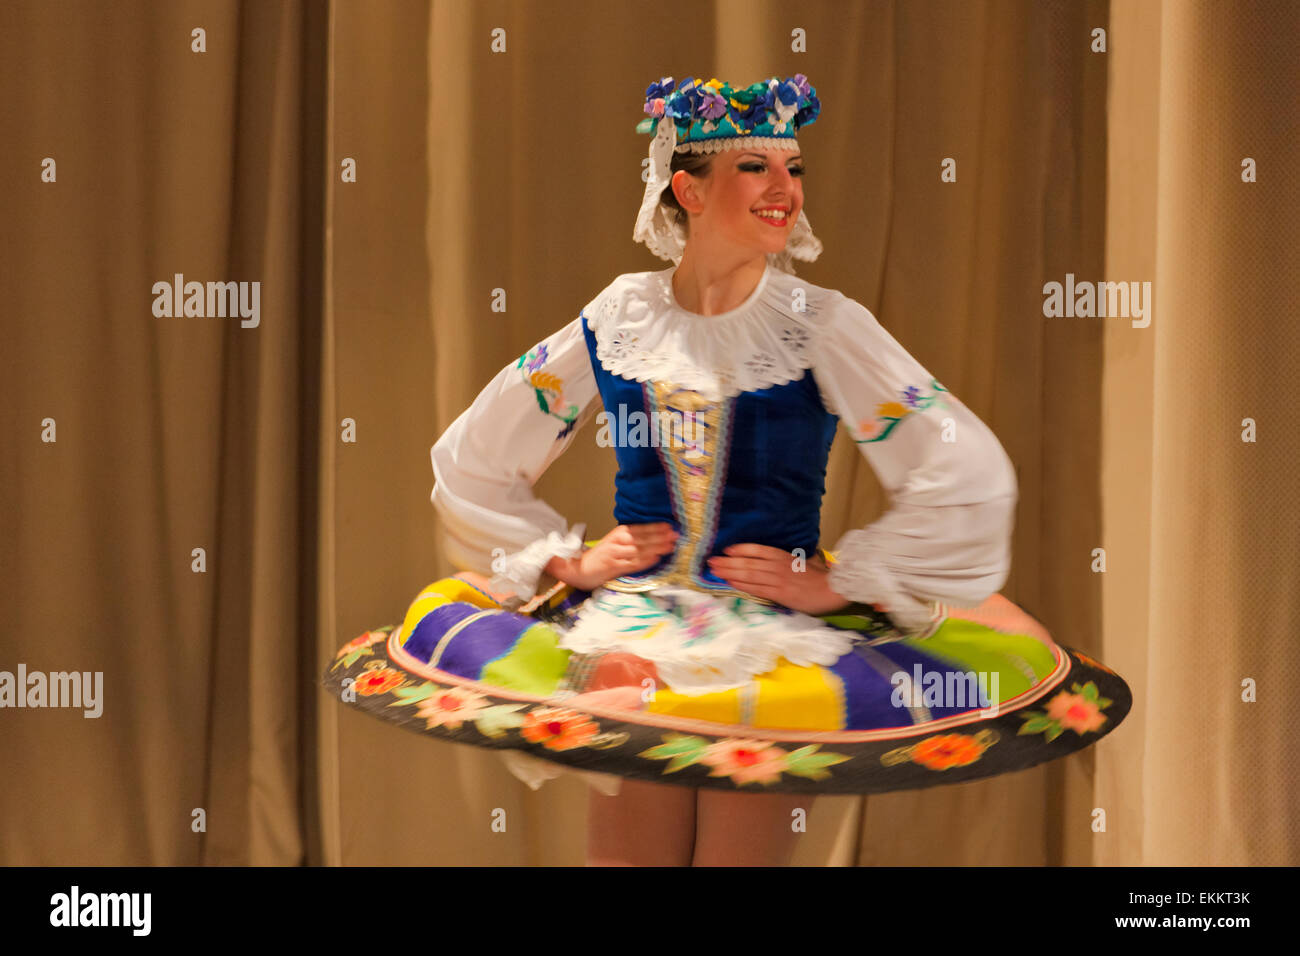 Folk dance performance, Minsk, Belarus - Stock Image